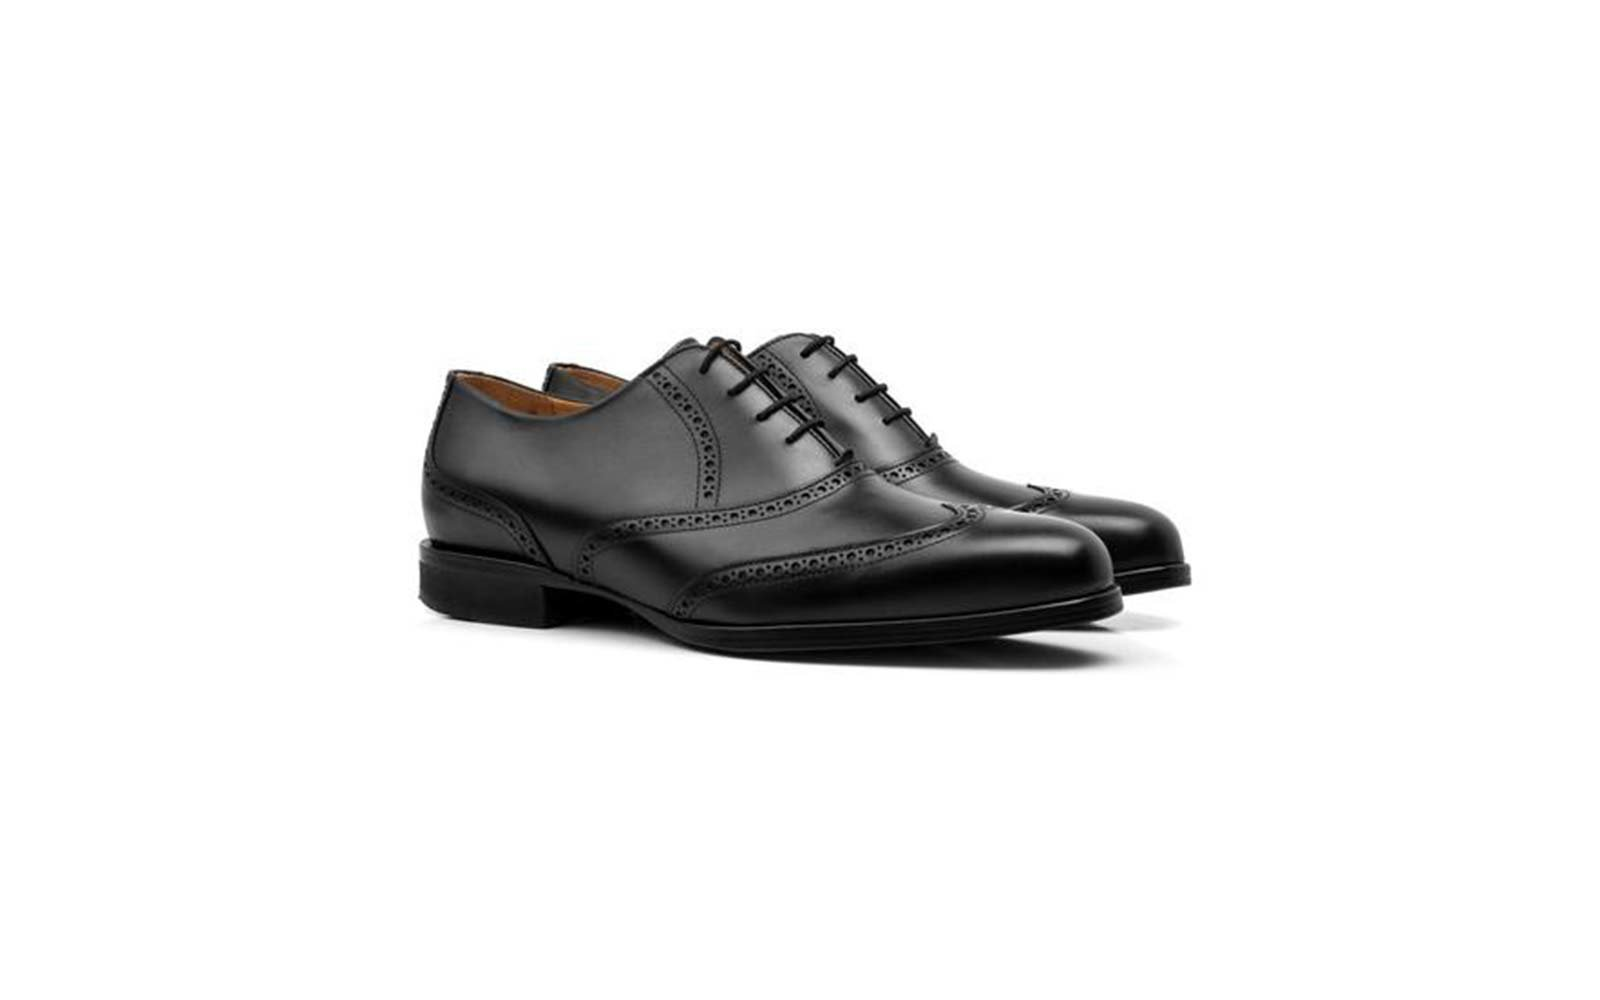 article for standing shoes dressy walking strategist most best work reviews comfortable and comforter flats